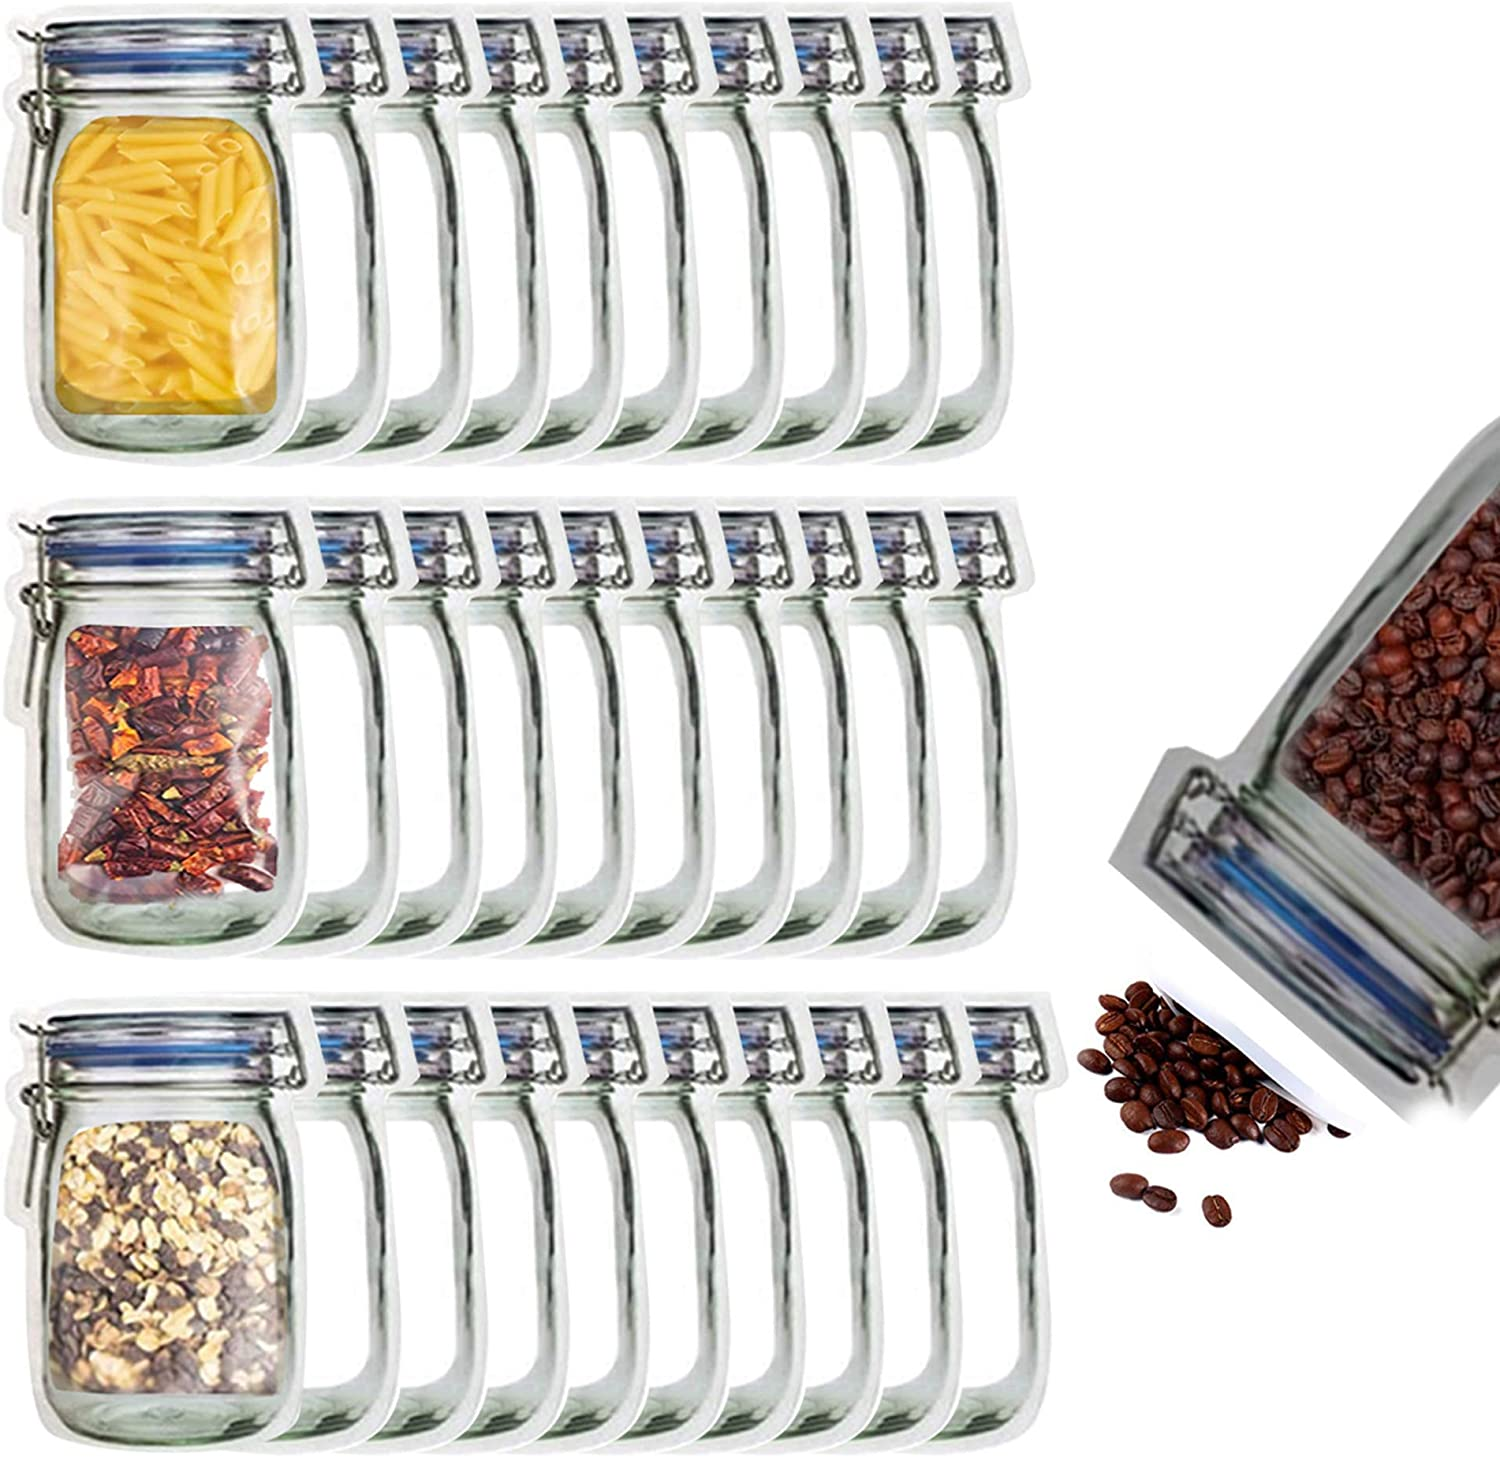 30 Mason Jar Bags, Wide Mouth Jar Bags Reusable Airtight Seal Food Storage Bags Leak-Proof Saver Bags for Travel Camping and Kids